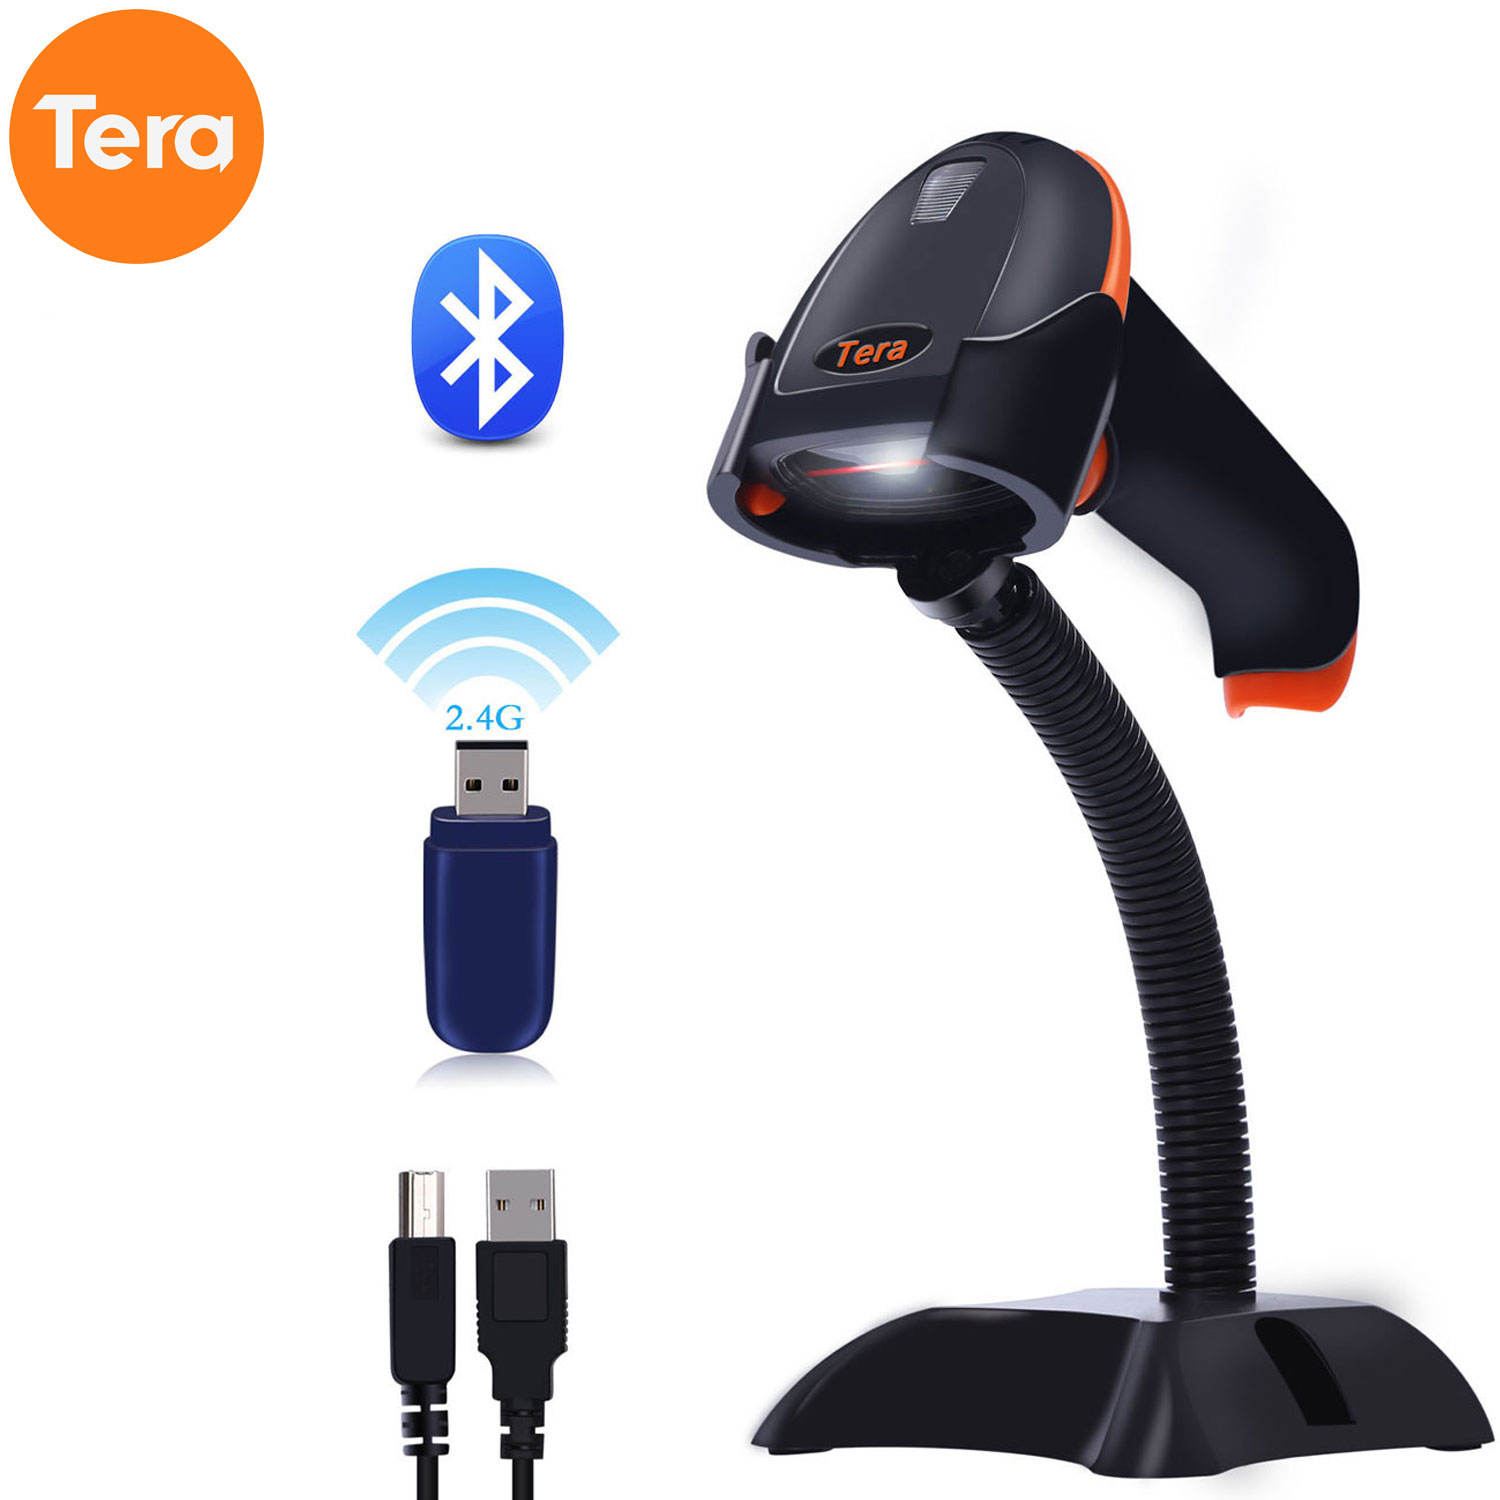 Tera 3 in 1 Wired&Wireless barcode scanner Bluetooth scanner barcode Digital 1D 2D QR Barcode Scanner with Hands Free Stand